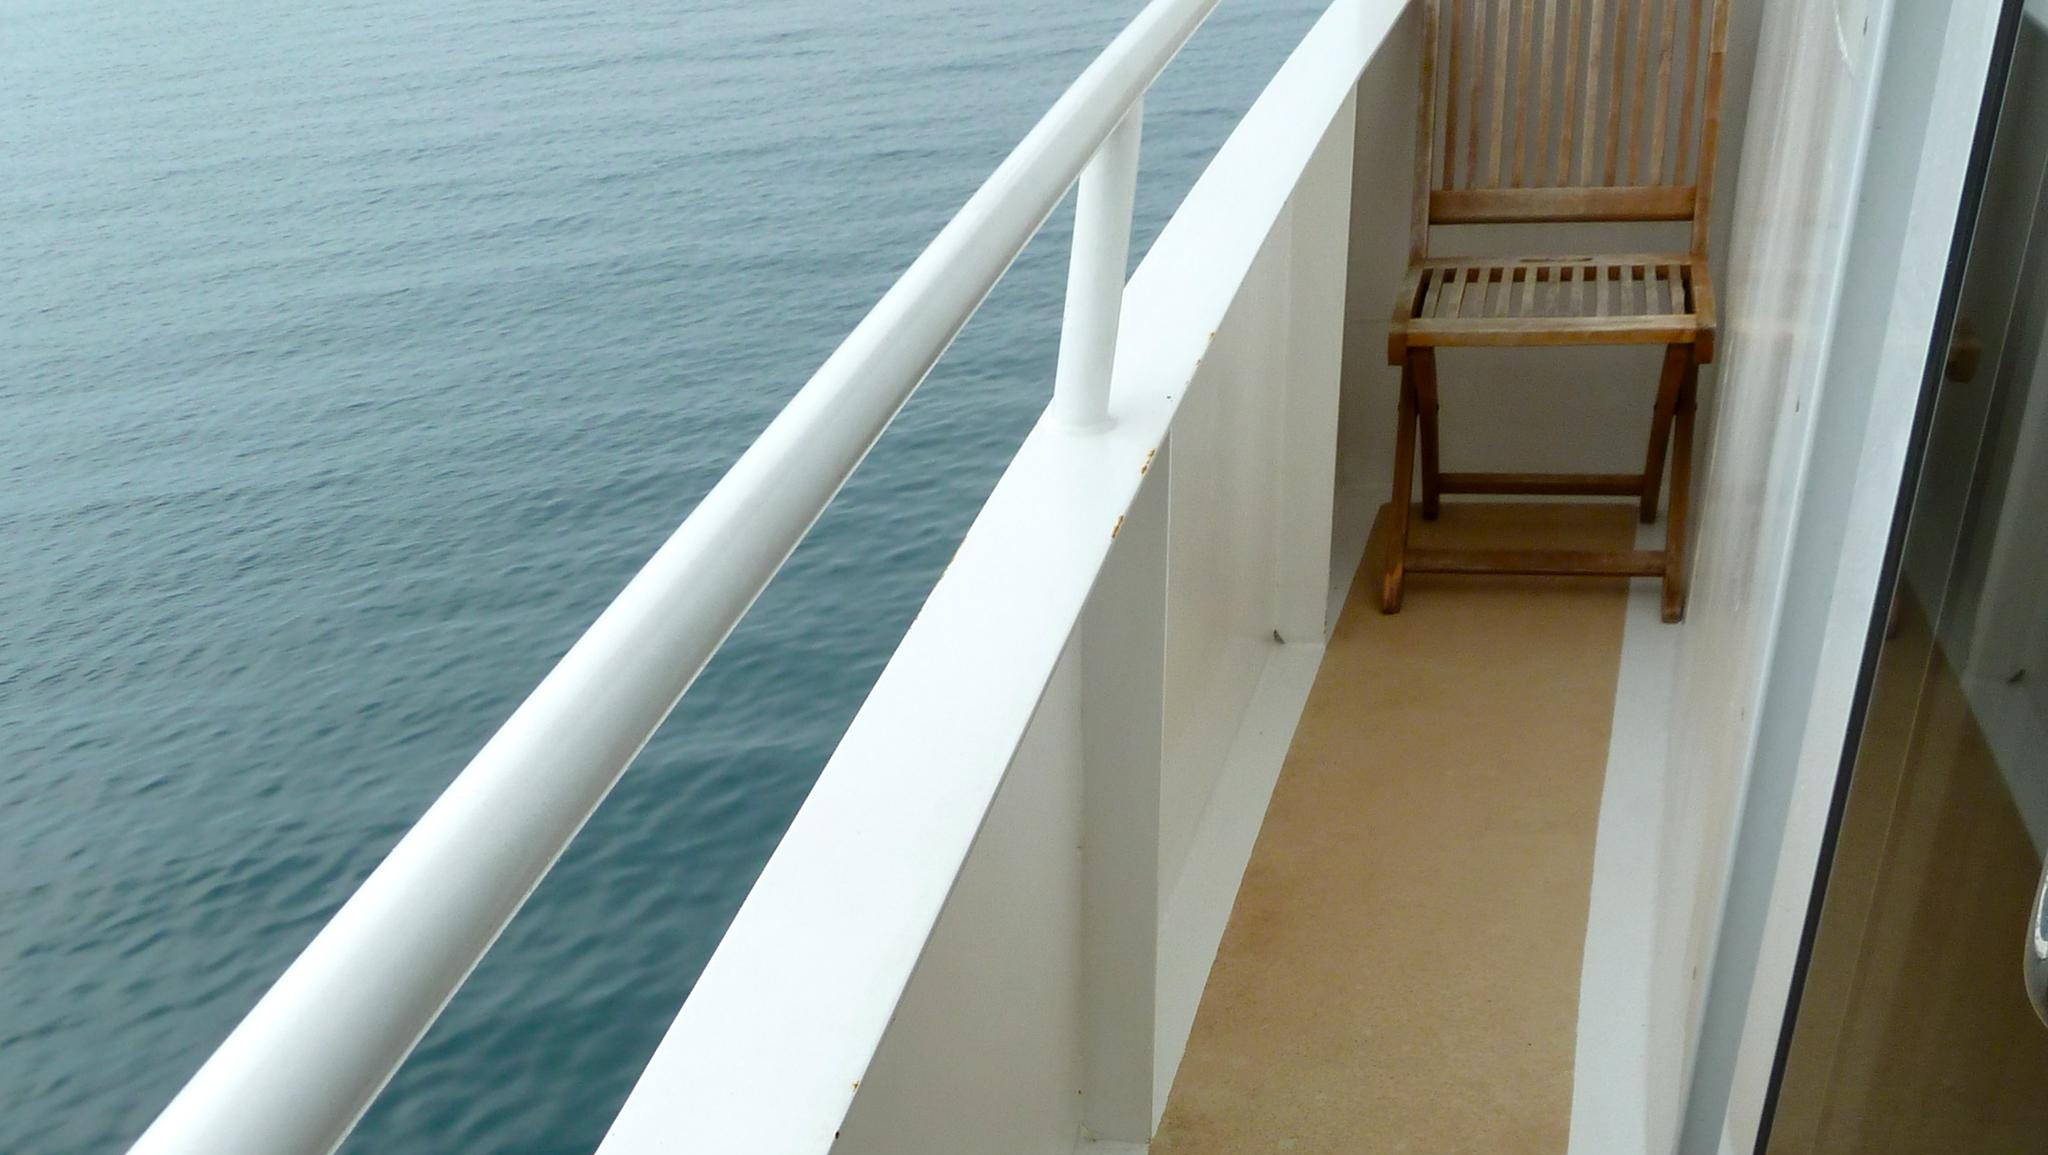 Commodore Suites also have their own private balconies.